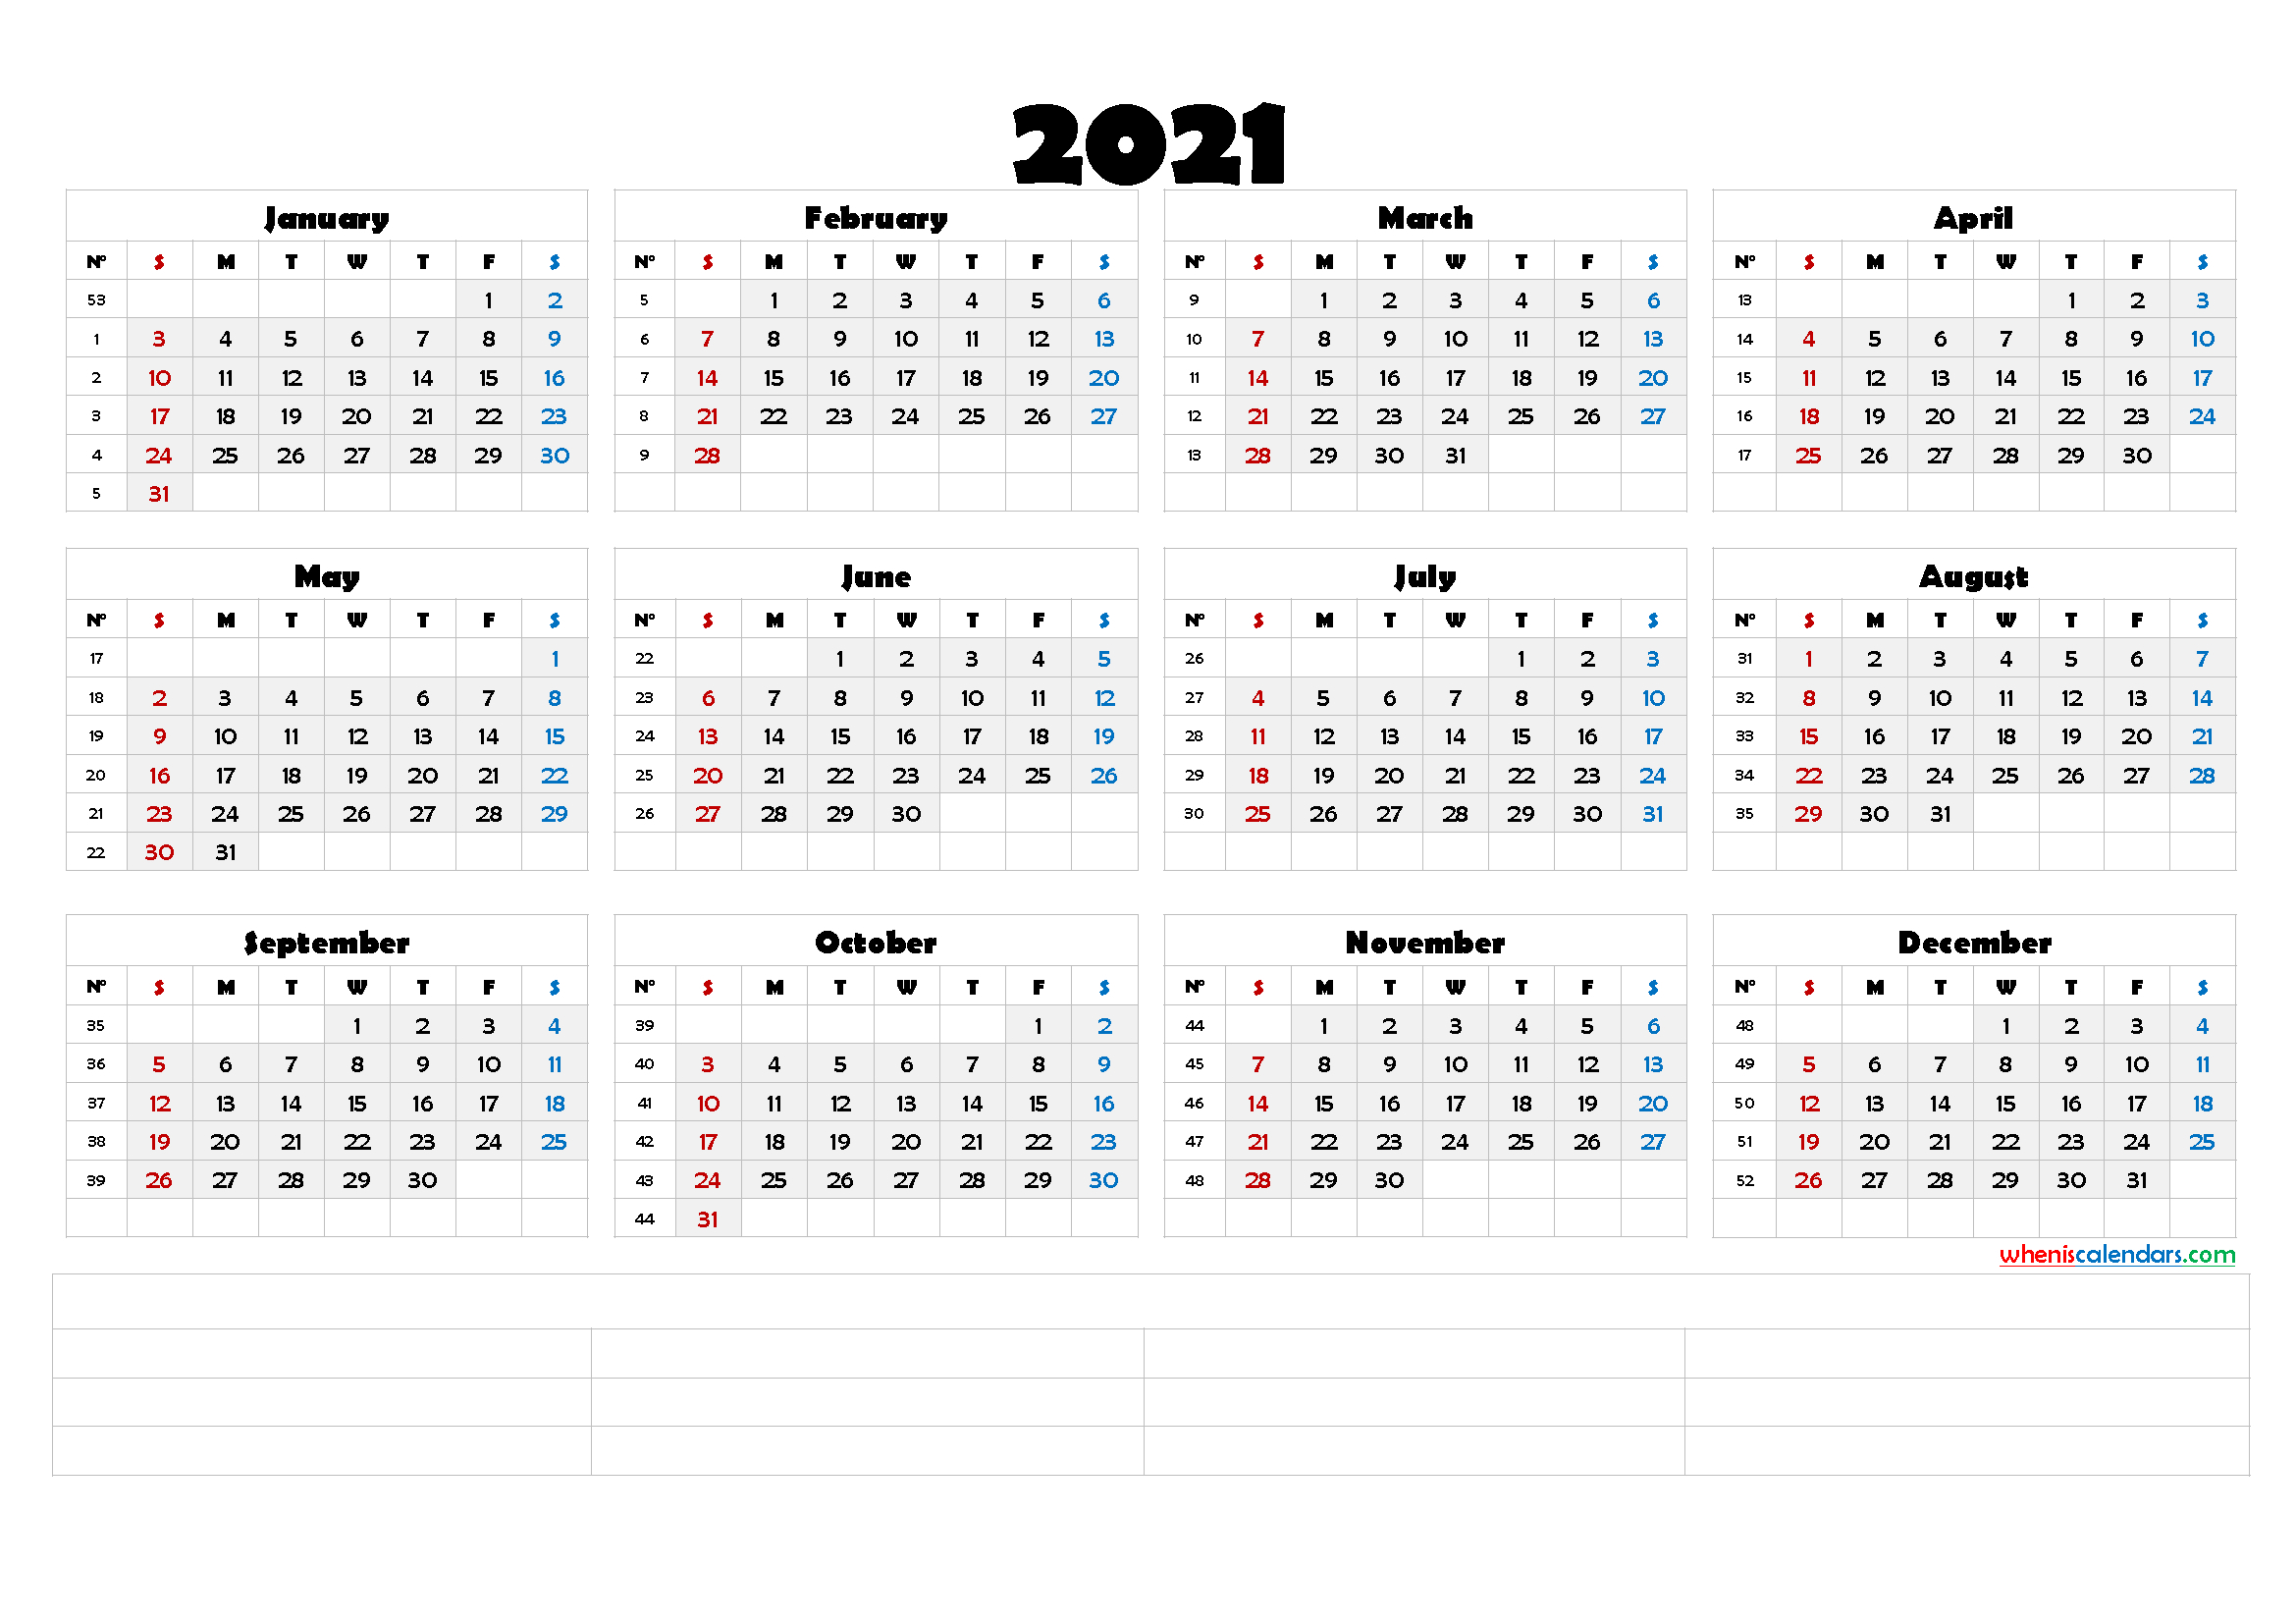 Printable 2021 Calendar With Week Numbers (6 Templates) intended for Monthly Calendar By Week Number 2021